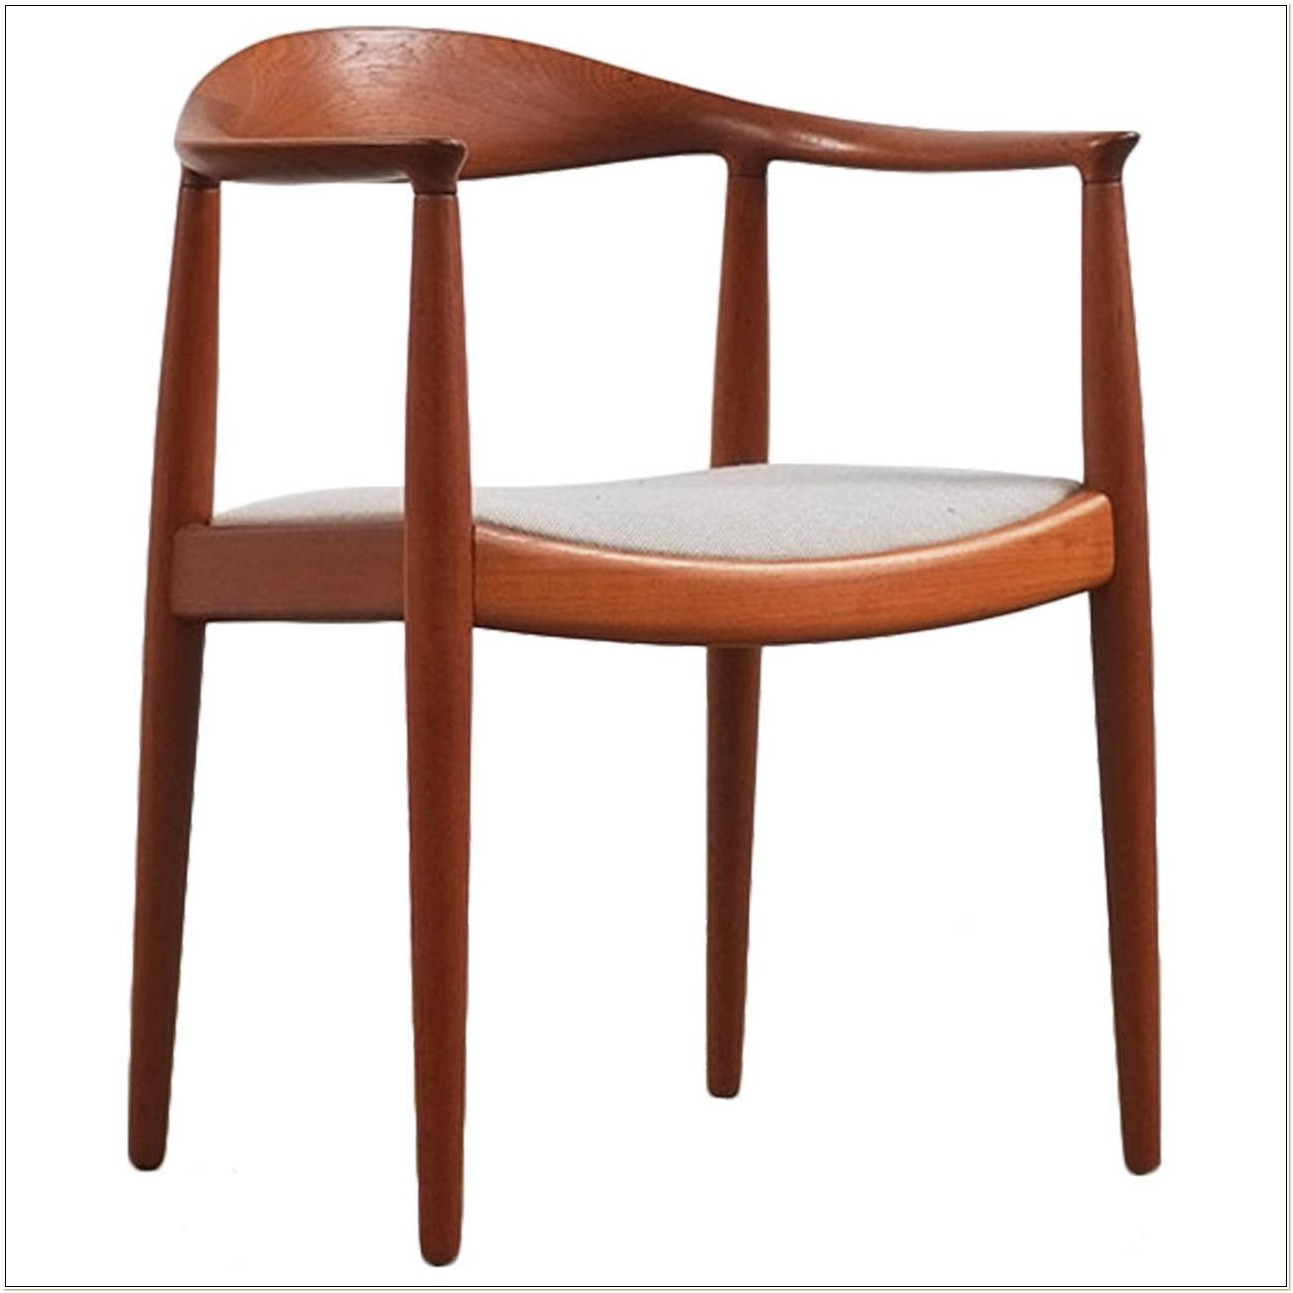 The Round Chair Hans Wegner